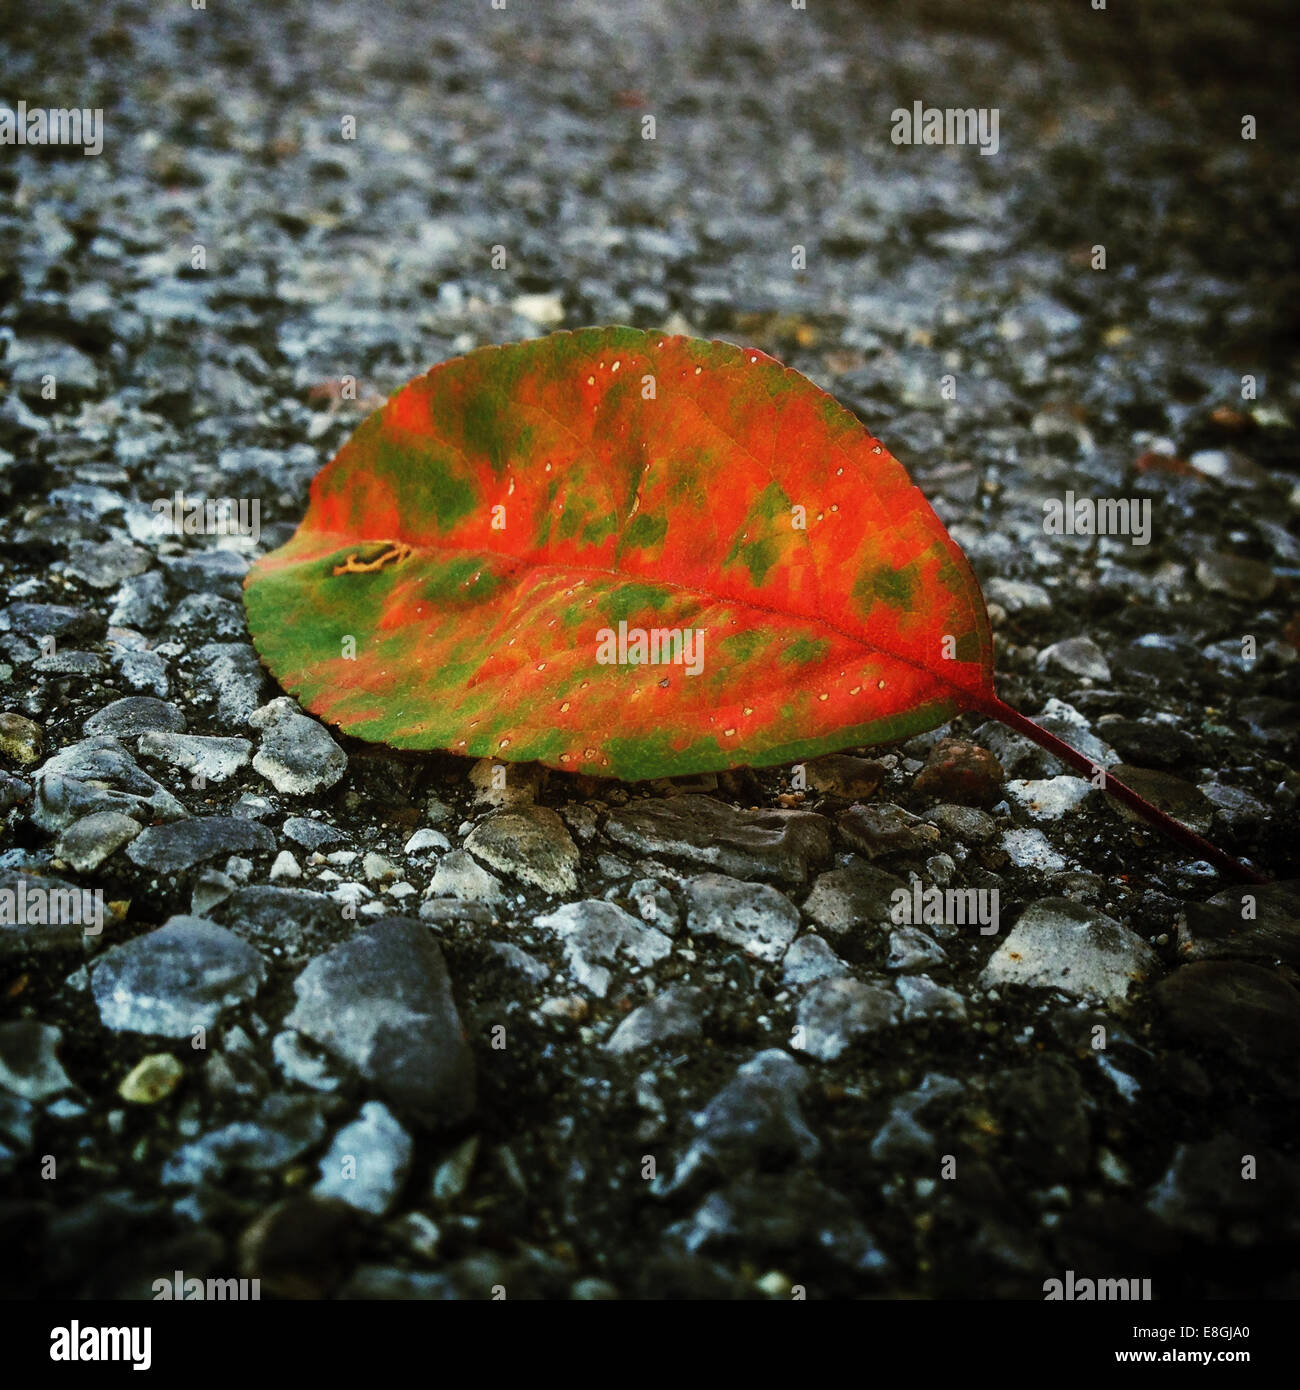 Close-up of leaf on ground - Stock Image